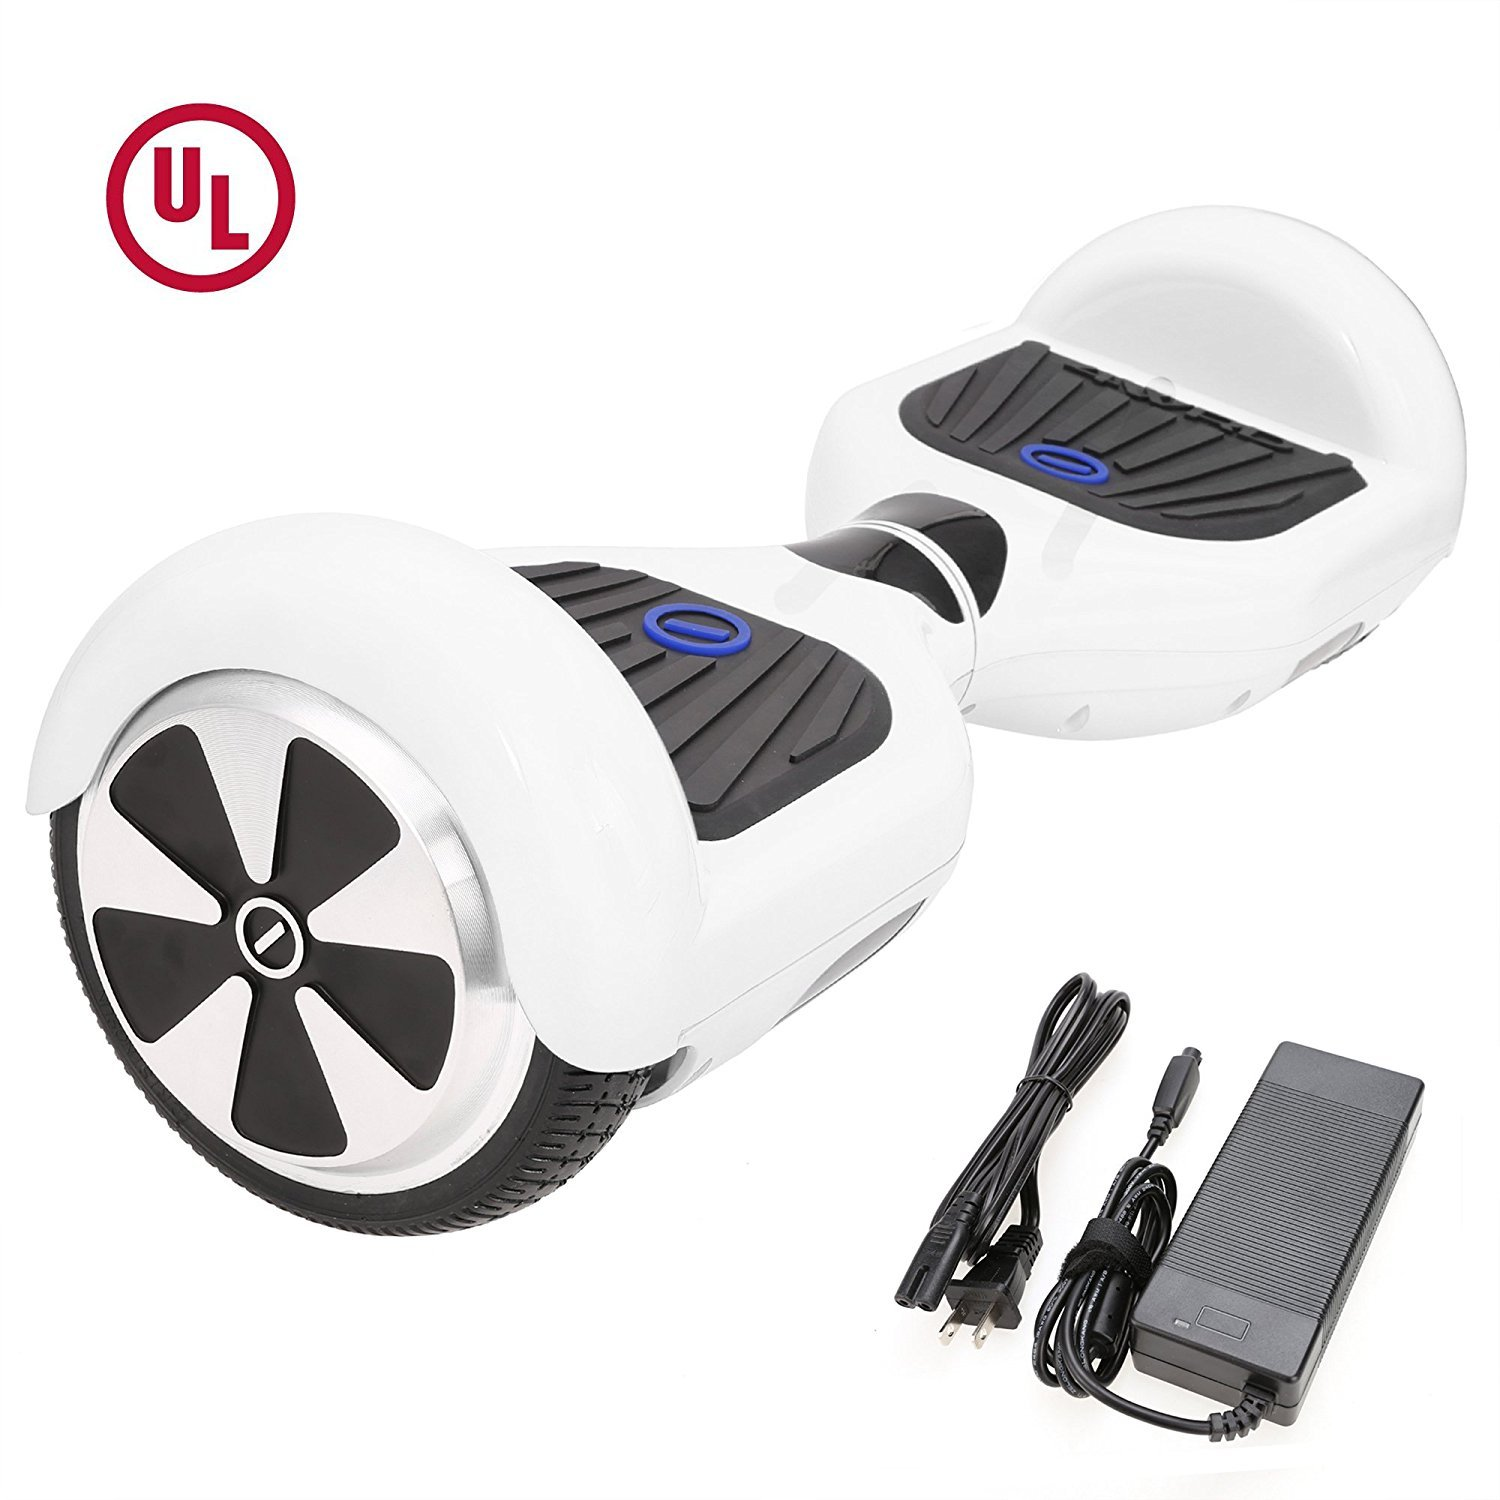 HIGH ROLLER 6.5'' waterproof Hoverboard with Buffing Shell UL 2272 Certified Self-Balancing Scooter with LED lights ,White